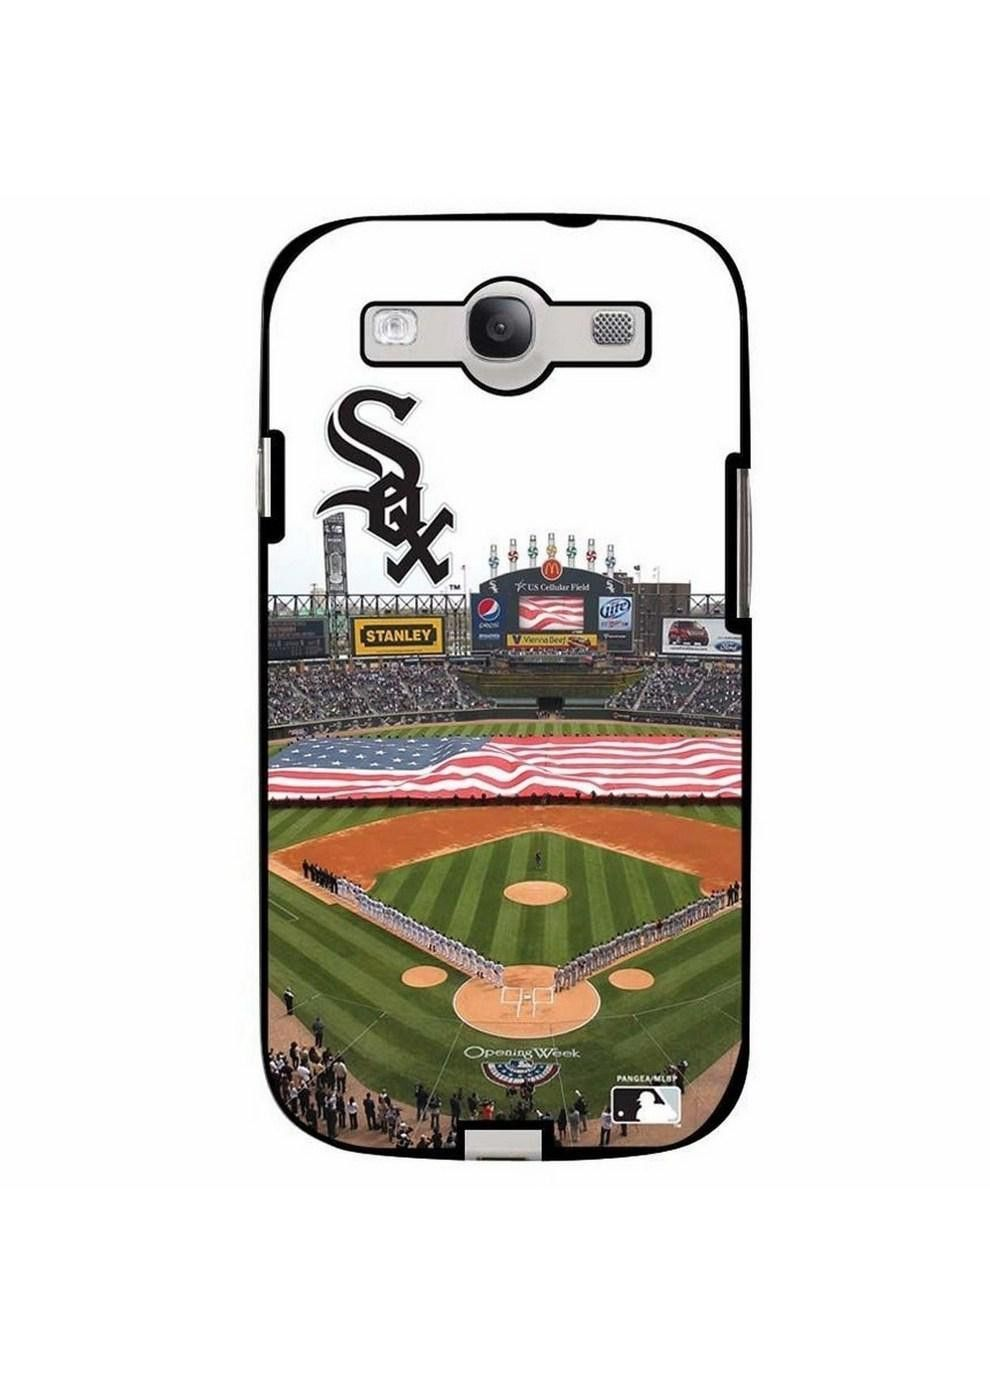 Samsung Galaxy S3 MLB - Chicago White Sox Stadium